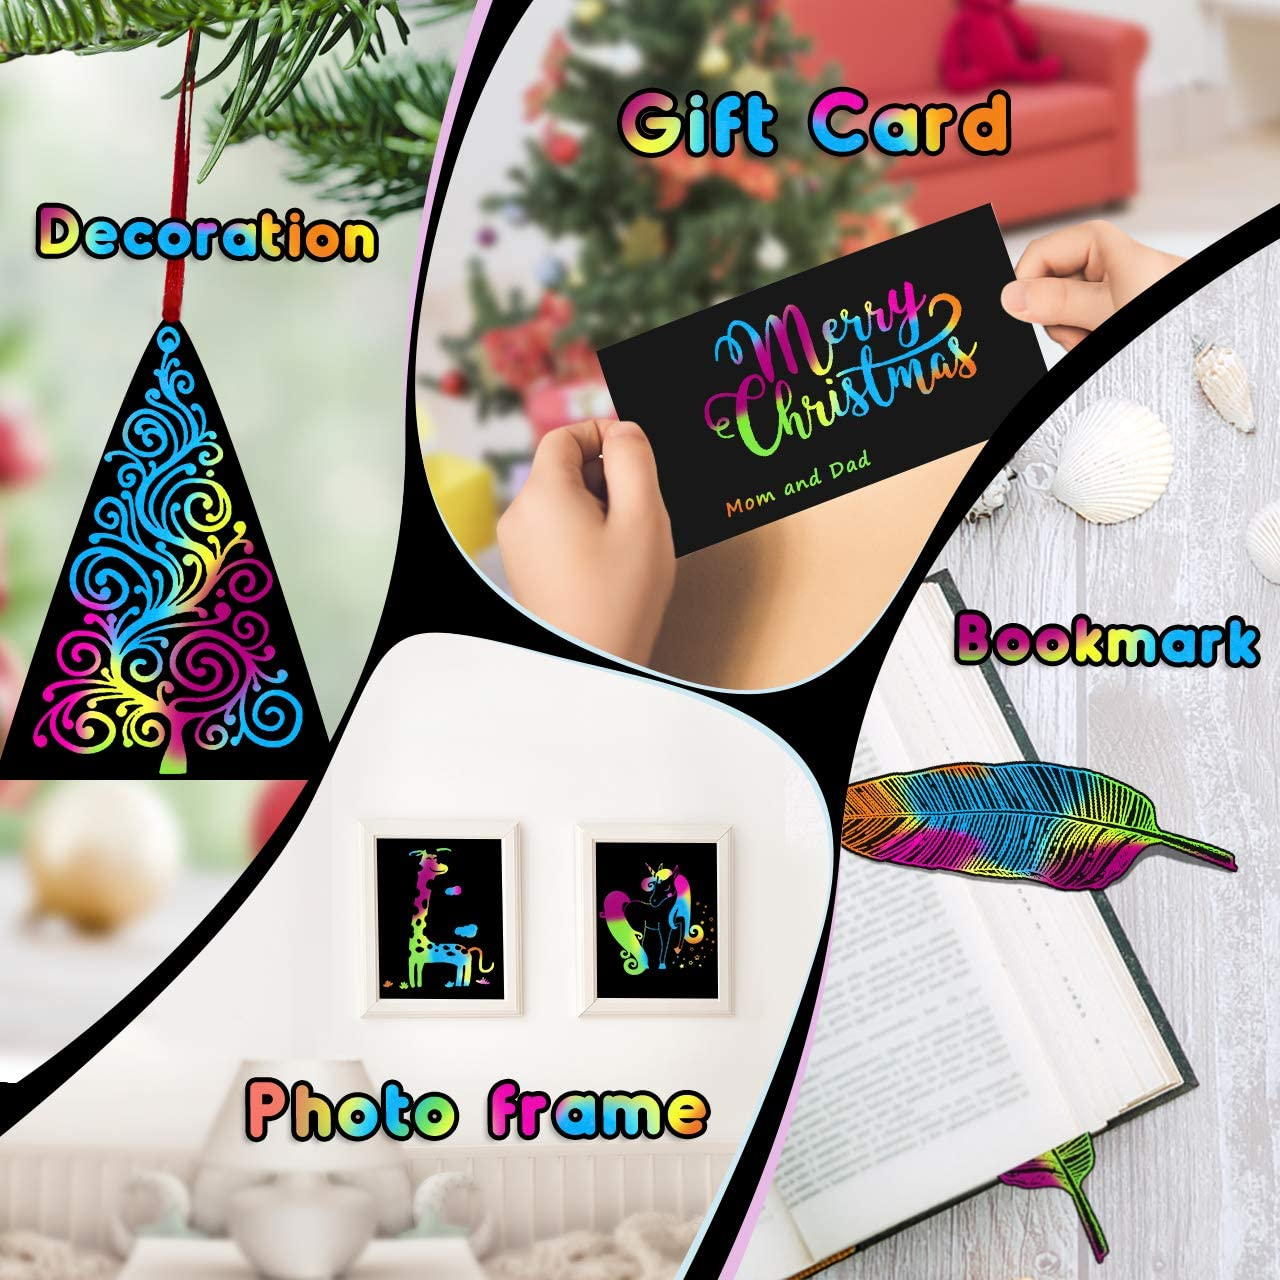 Scratch Art for Kids Gifts Age 3-12 Scratch Paper Art Set for Kids Arts and Crafts Set for Kids Toddler Baby Rainbow Scratch Gifts for 5-10 Year Old Girls LETS GO Toys for 3-12 Year Old Boys Girls